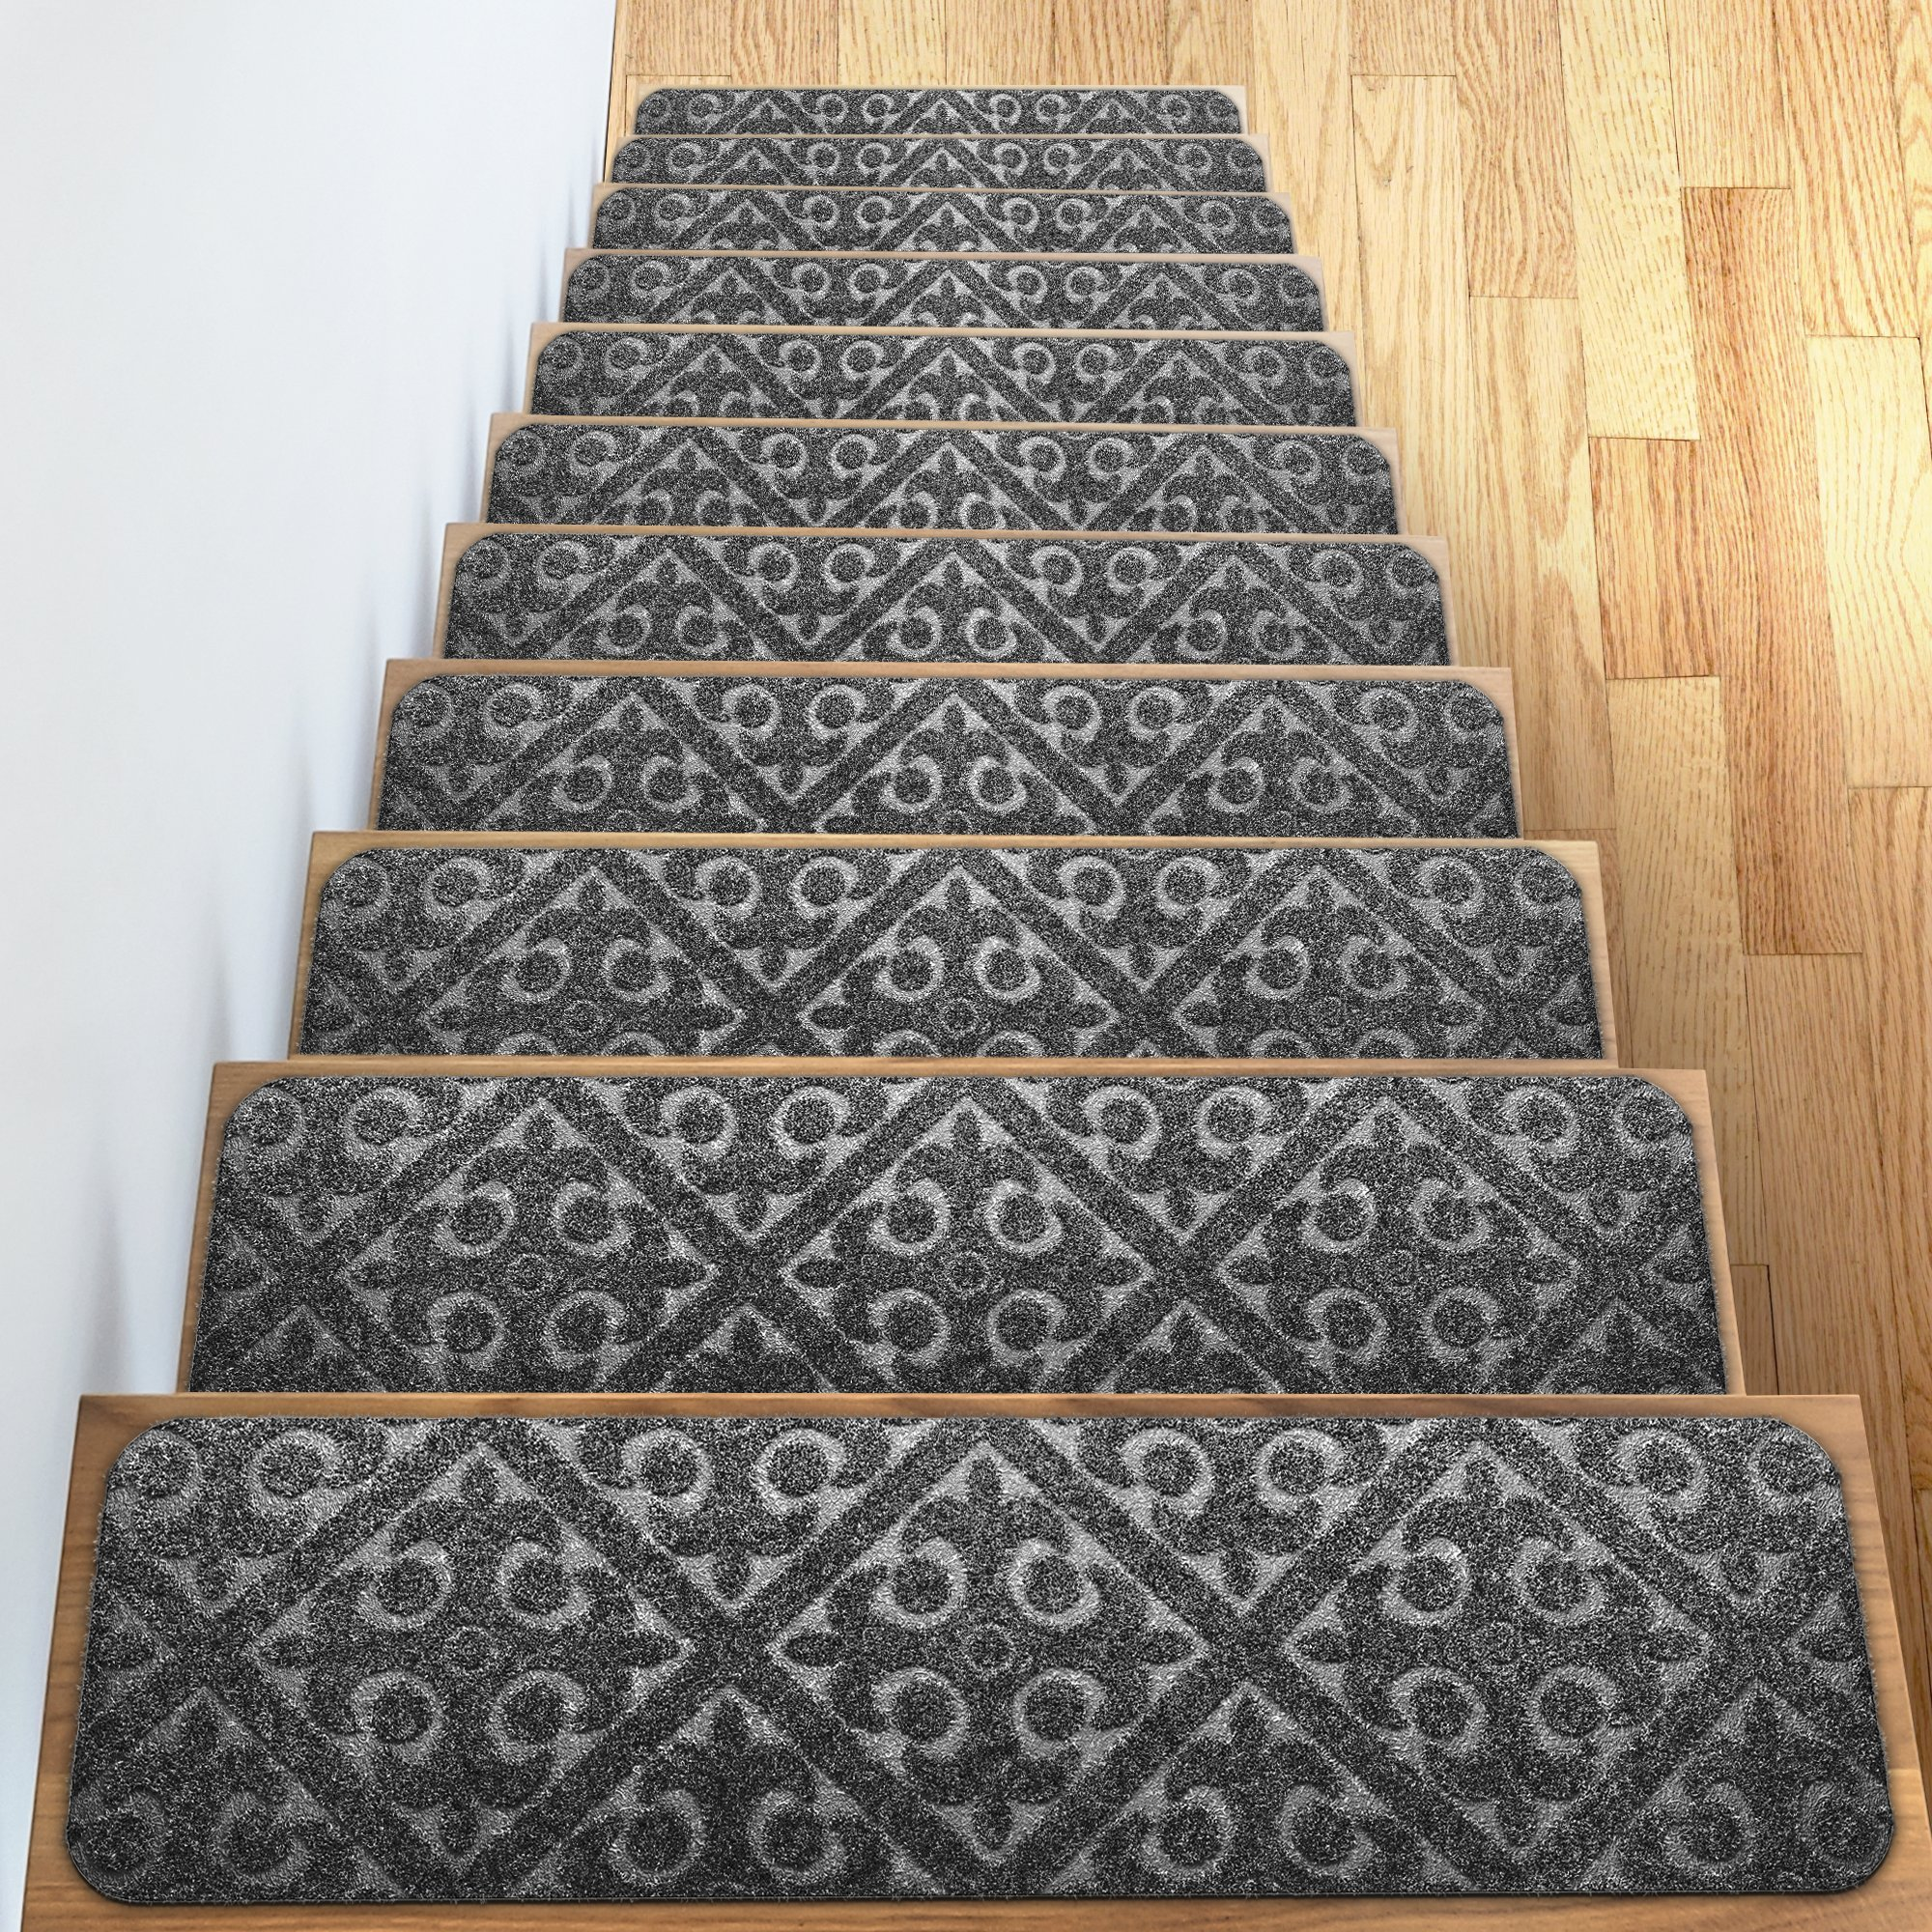 Elogio Carpet Stair Treads Set of 13 Non Slip/Skid Rubber Runner Mats or Rug Tread - Indoor Outdoor Pet Dog Stair Treads Pads - Non-Slip Stairway Carpet Rugs (Gray) 8'' x 30'' Includes Adhesive Tape